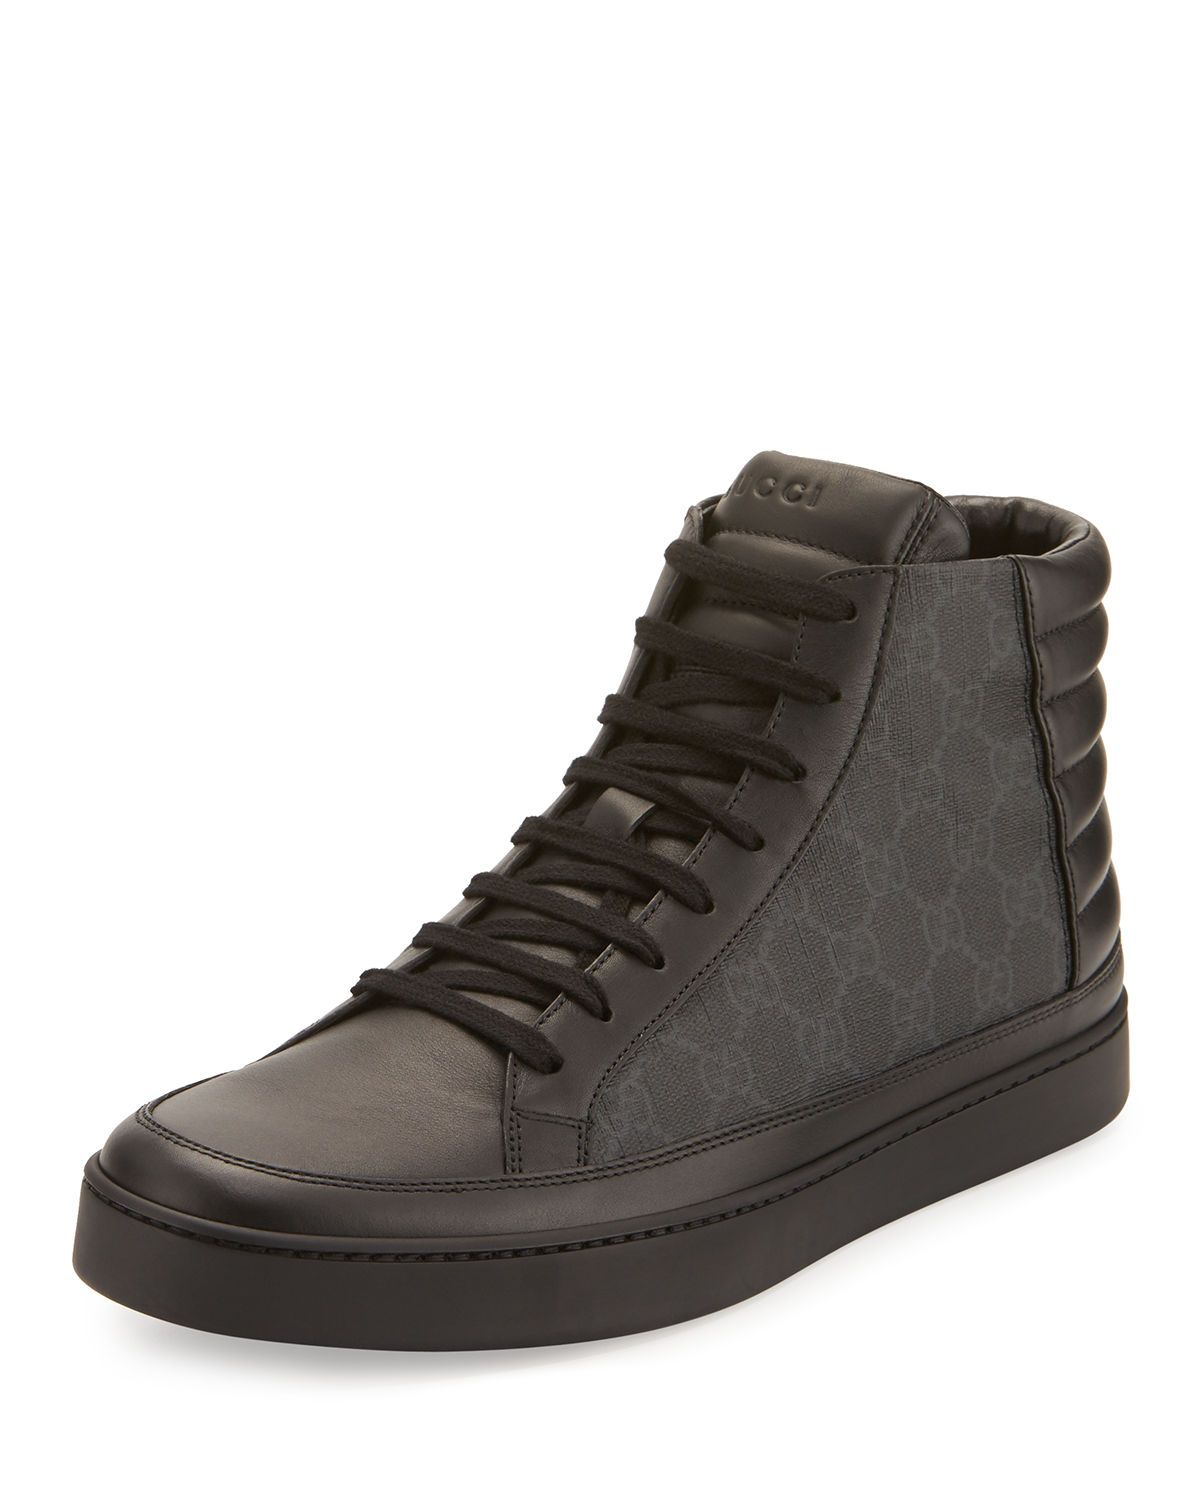 e92947257 Men's Common Canvas & Leather High-Top Sneakers in 2019 | AJ ...